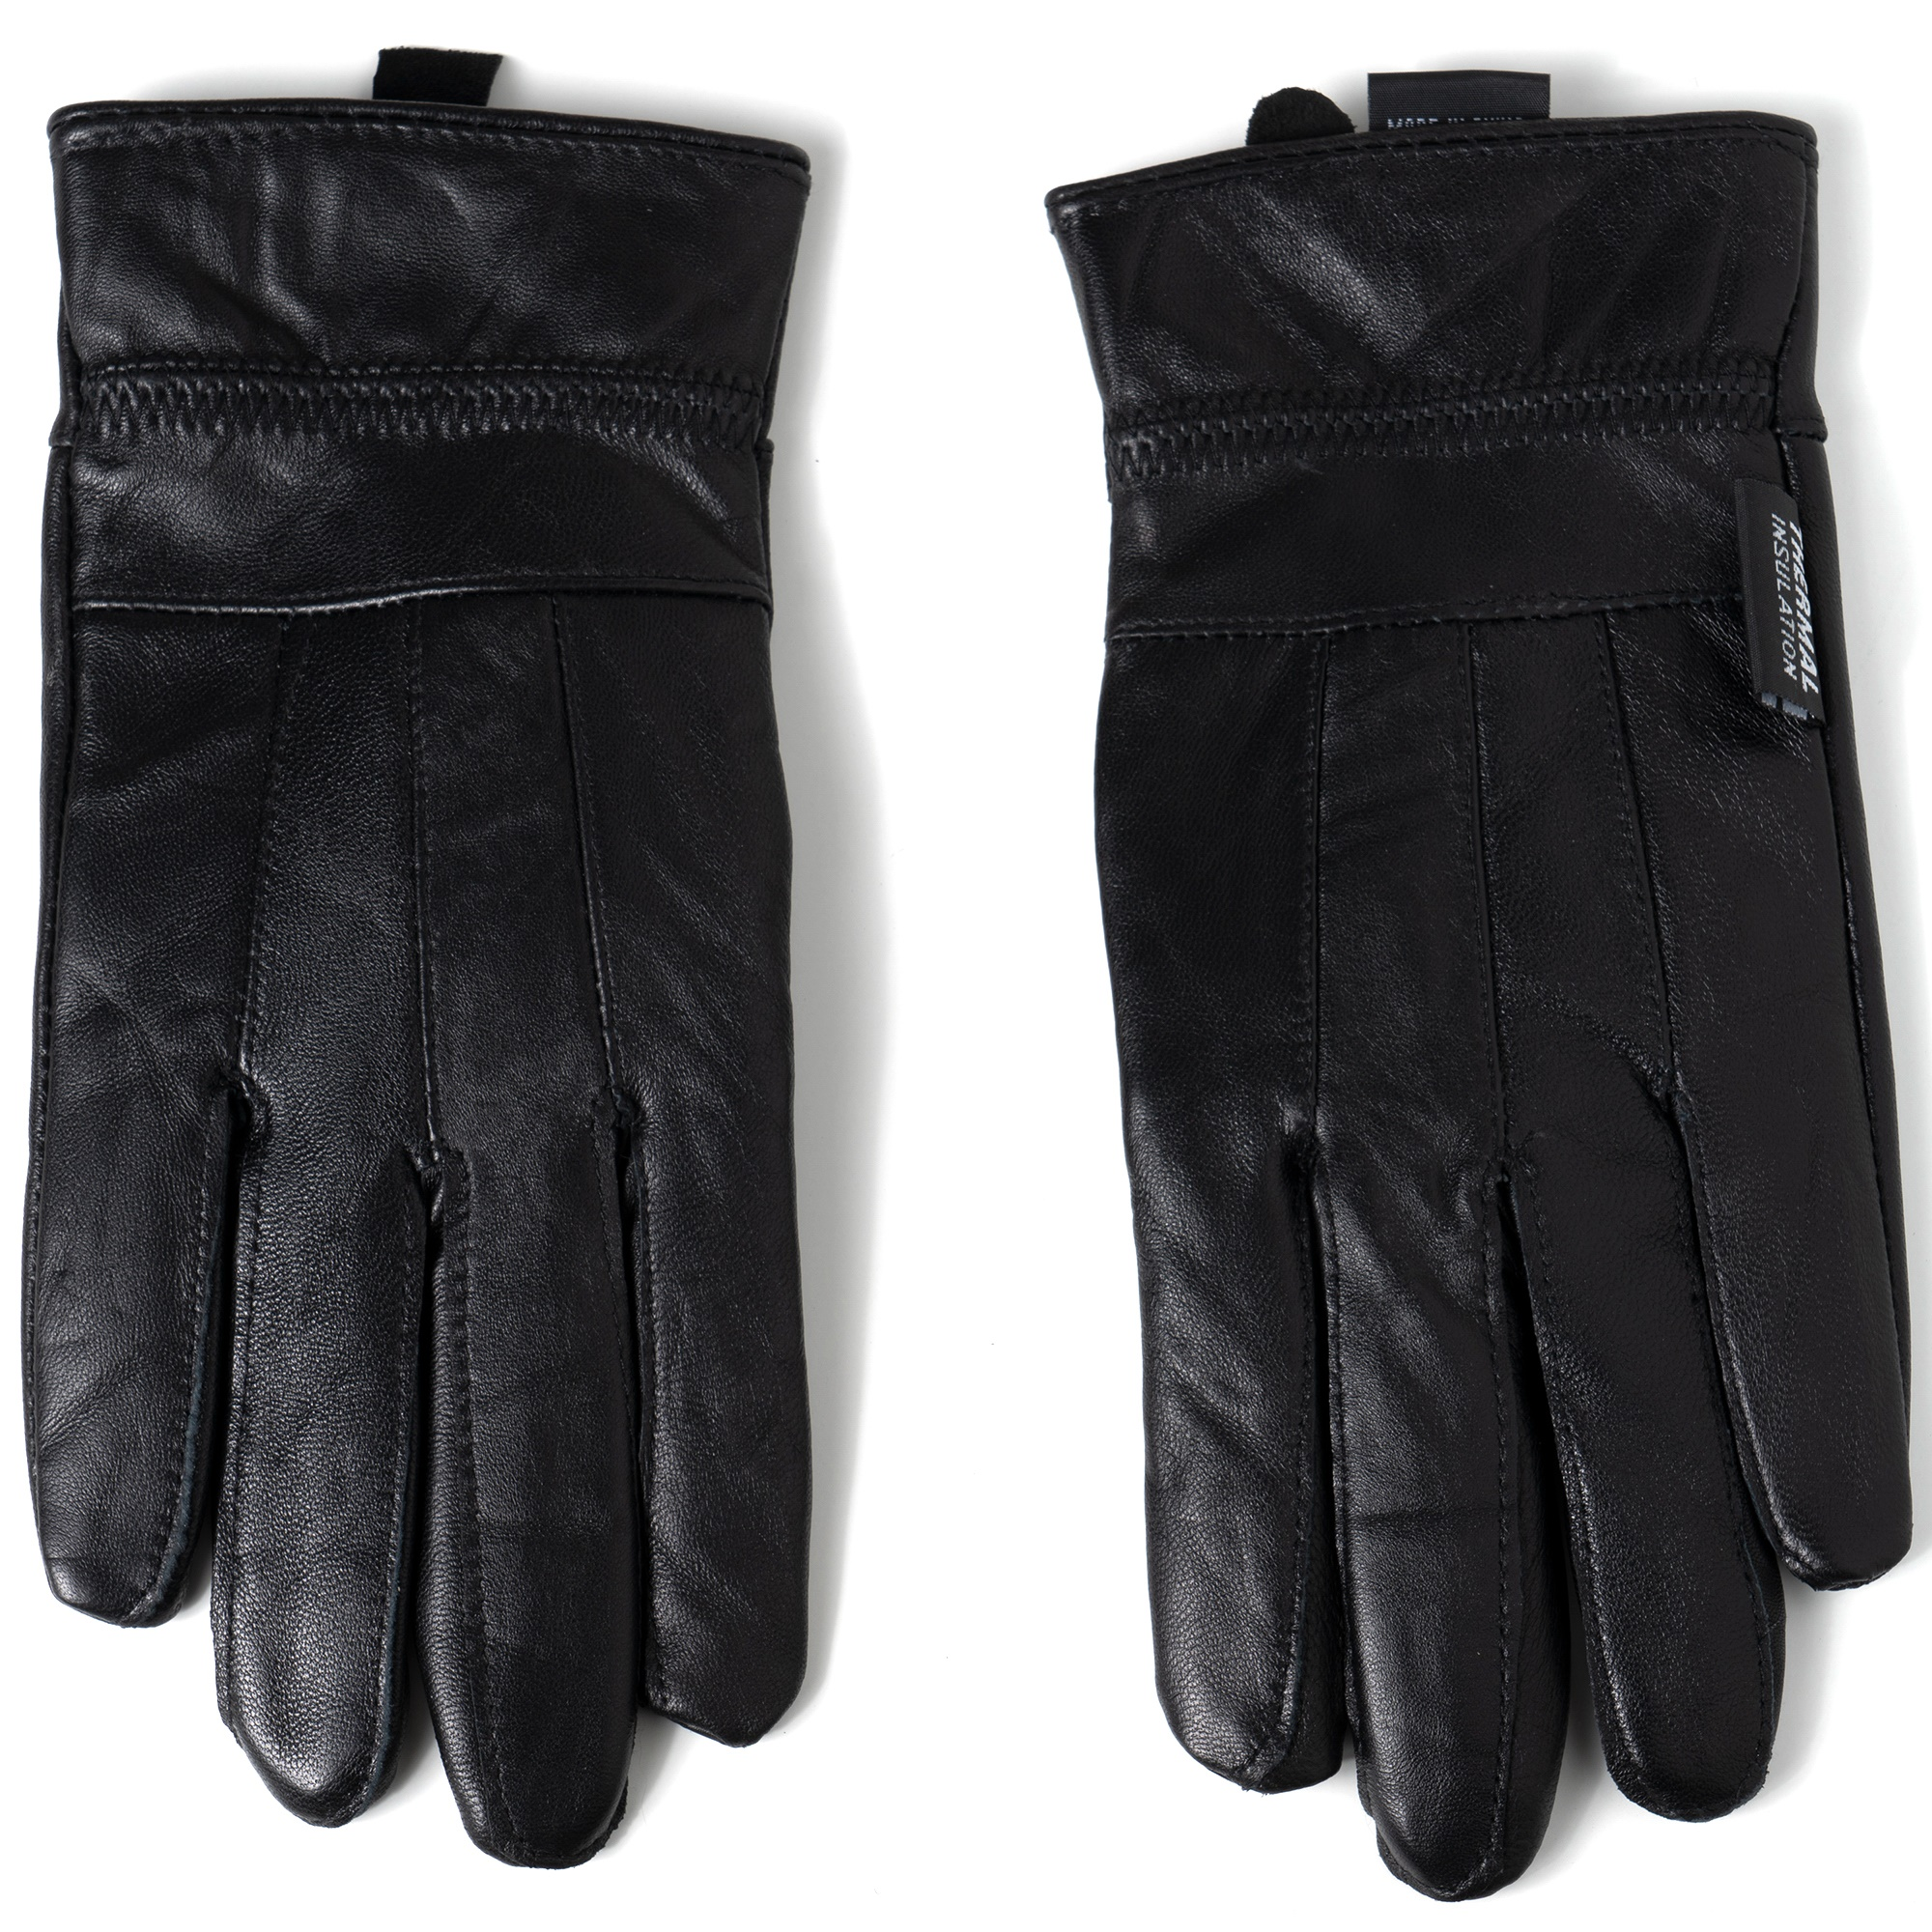 Alpine-Swiss-Womens-Touch-Screen-Gloves-Leather-Phone-Texting-Glove-Thermal-Warm thumbnail 17